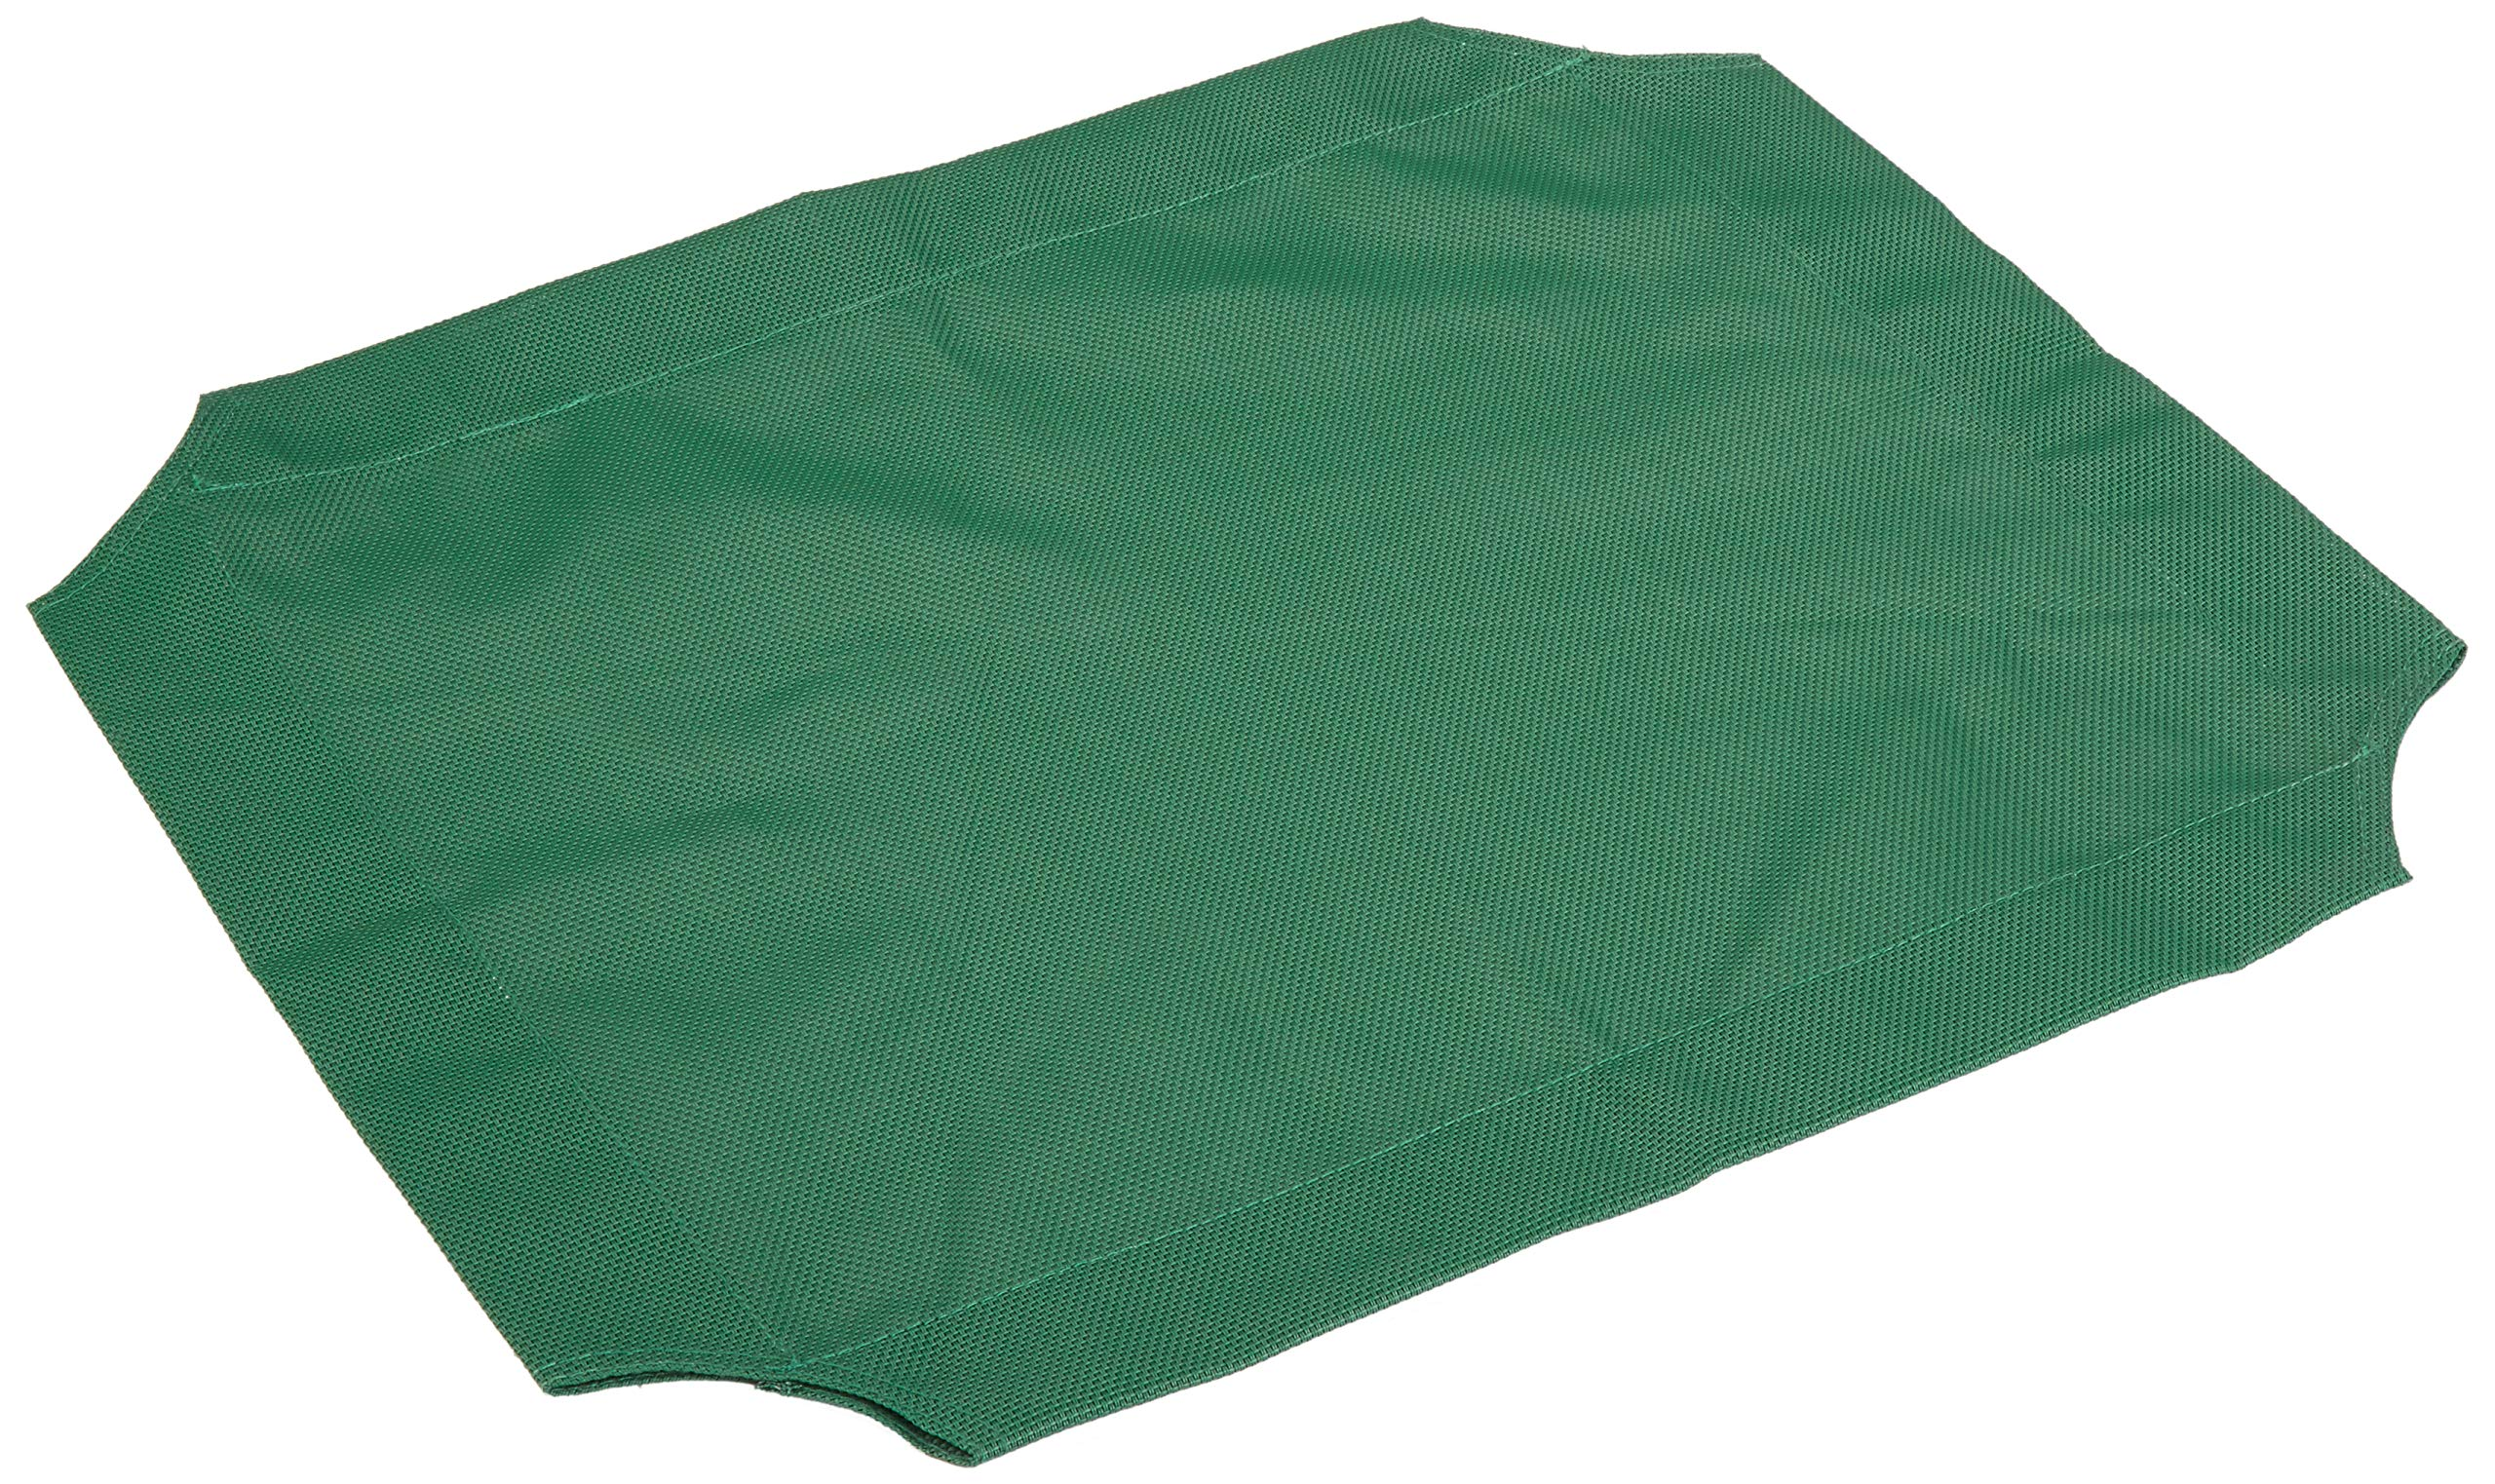 Amazon Basics Elevated Cooling Pet Bed Replacement Cover